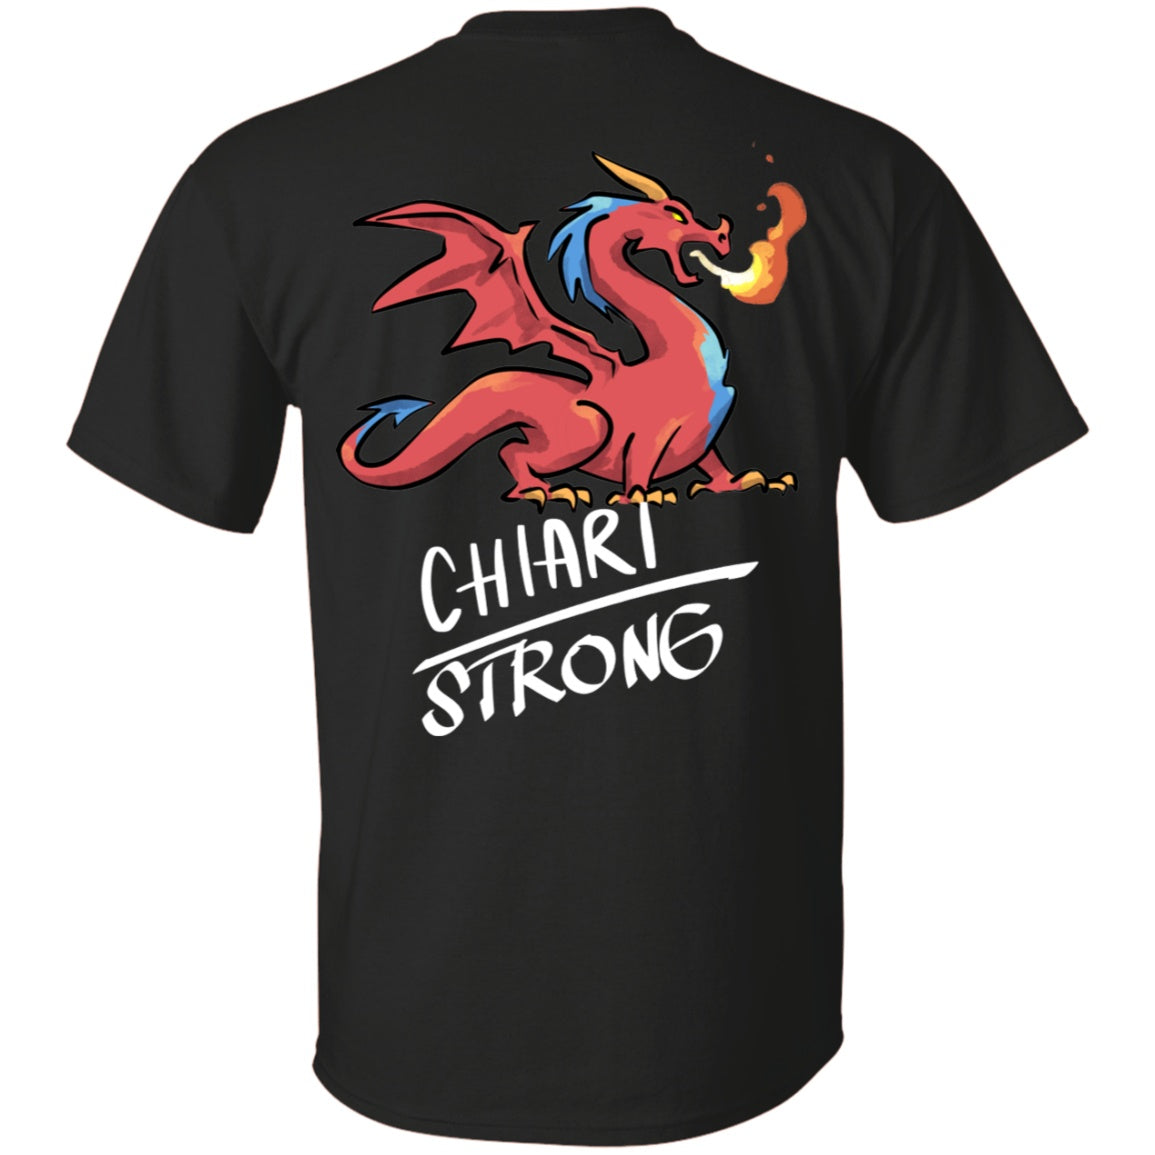 Chiari Strong Dragon Unisex T-Shirt - The Unchargeables